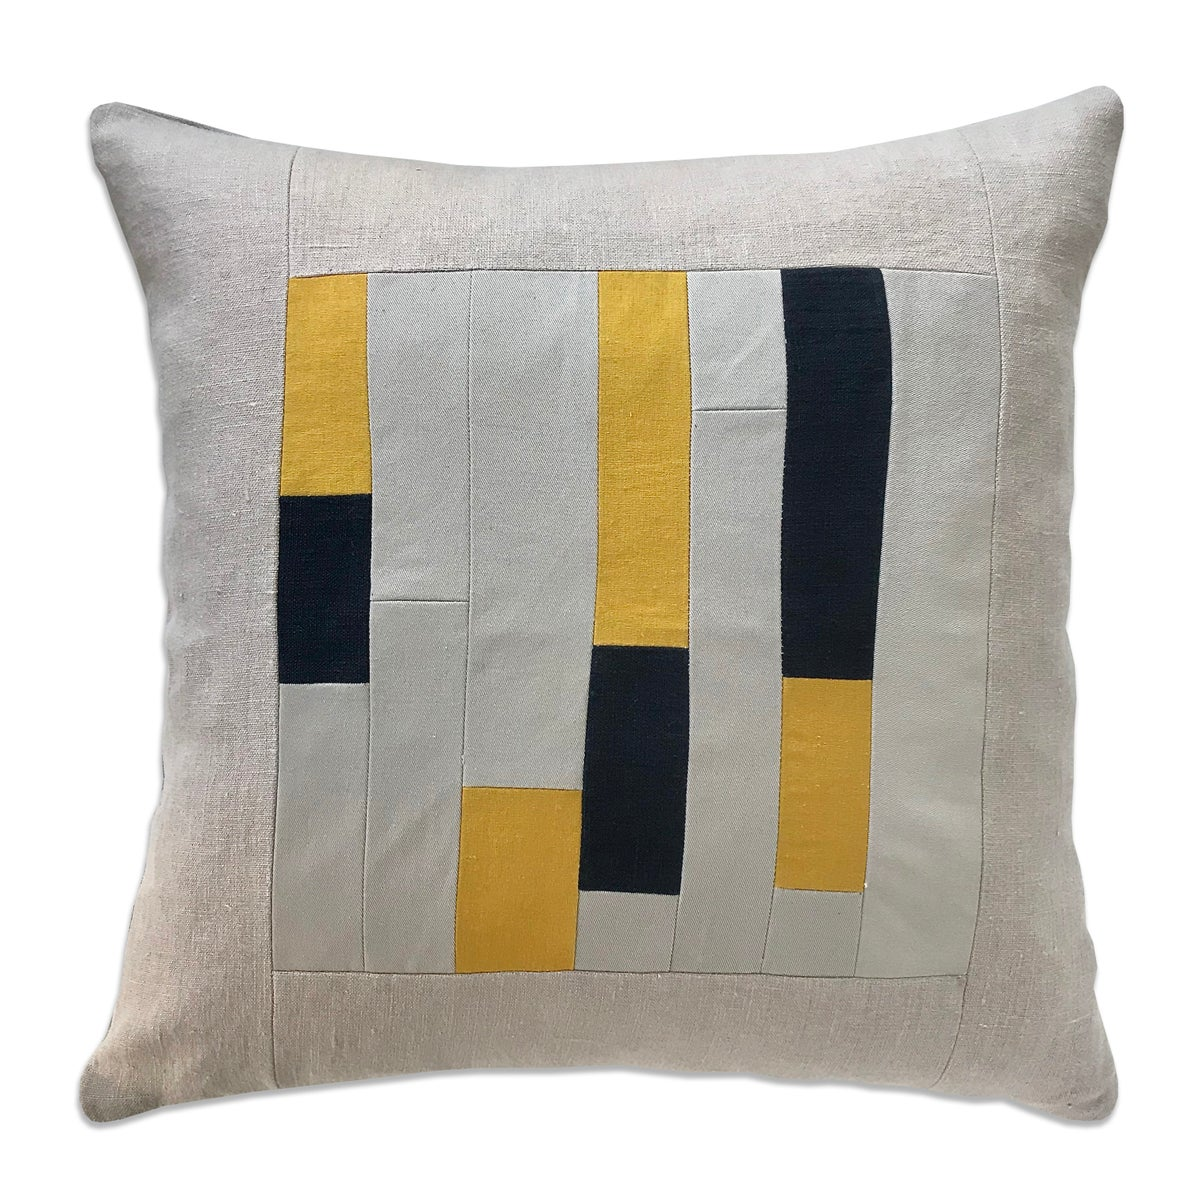 Image of GRAPHIC COLLAGE PILLOW #7